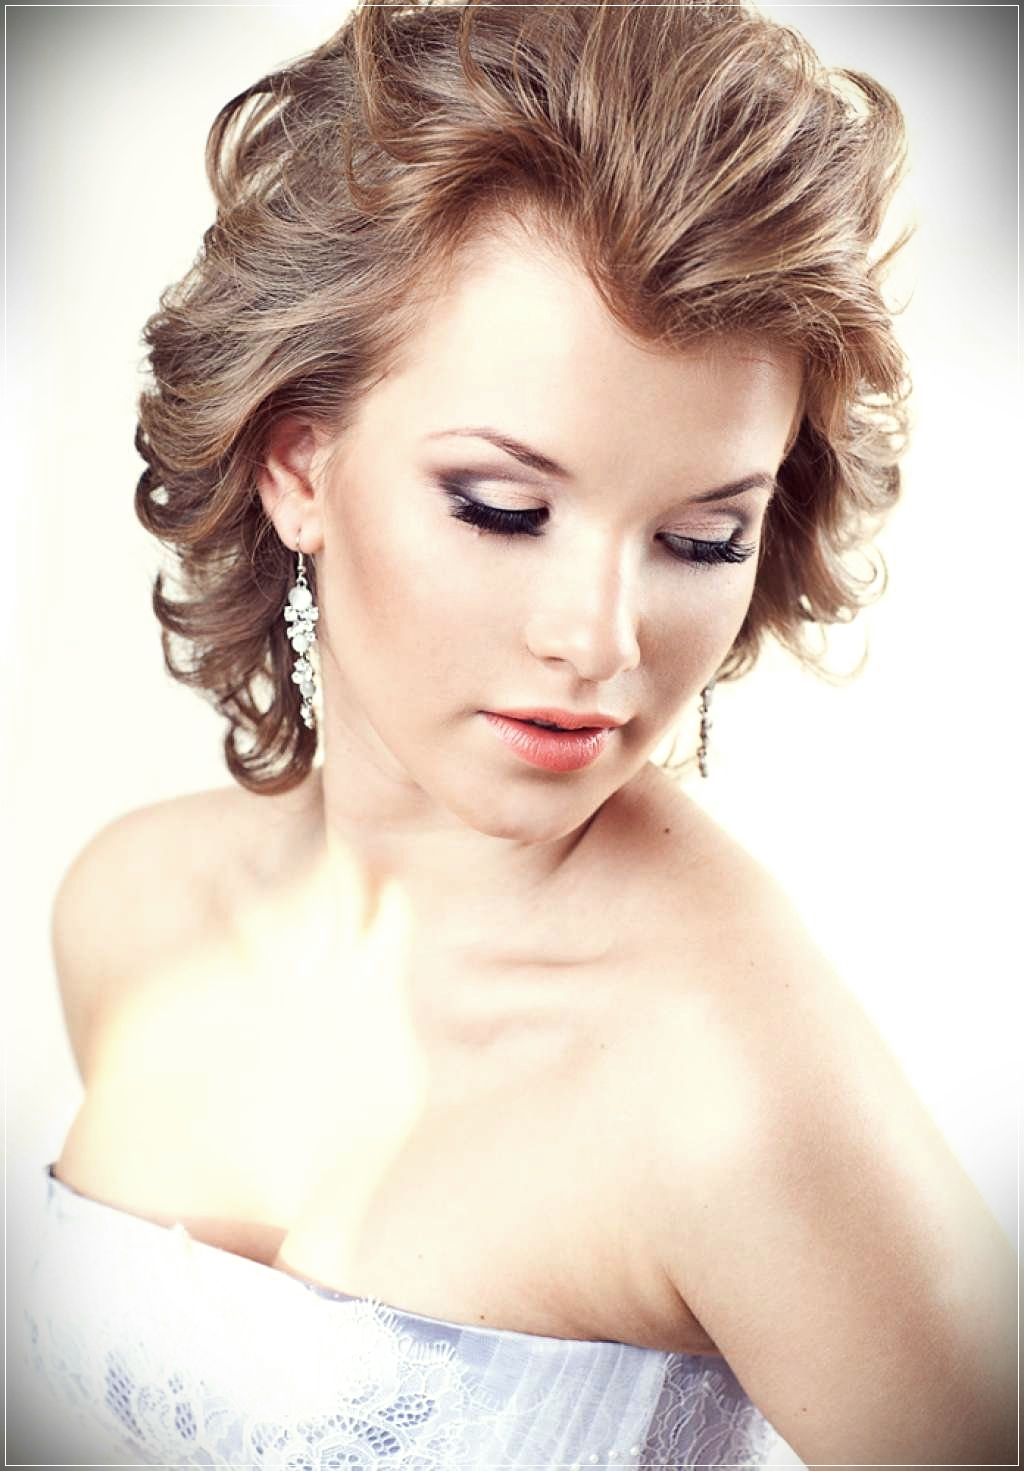 prom hairstyles for short hair 3 - Choose the perfect hairstyle for your short hair